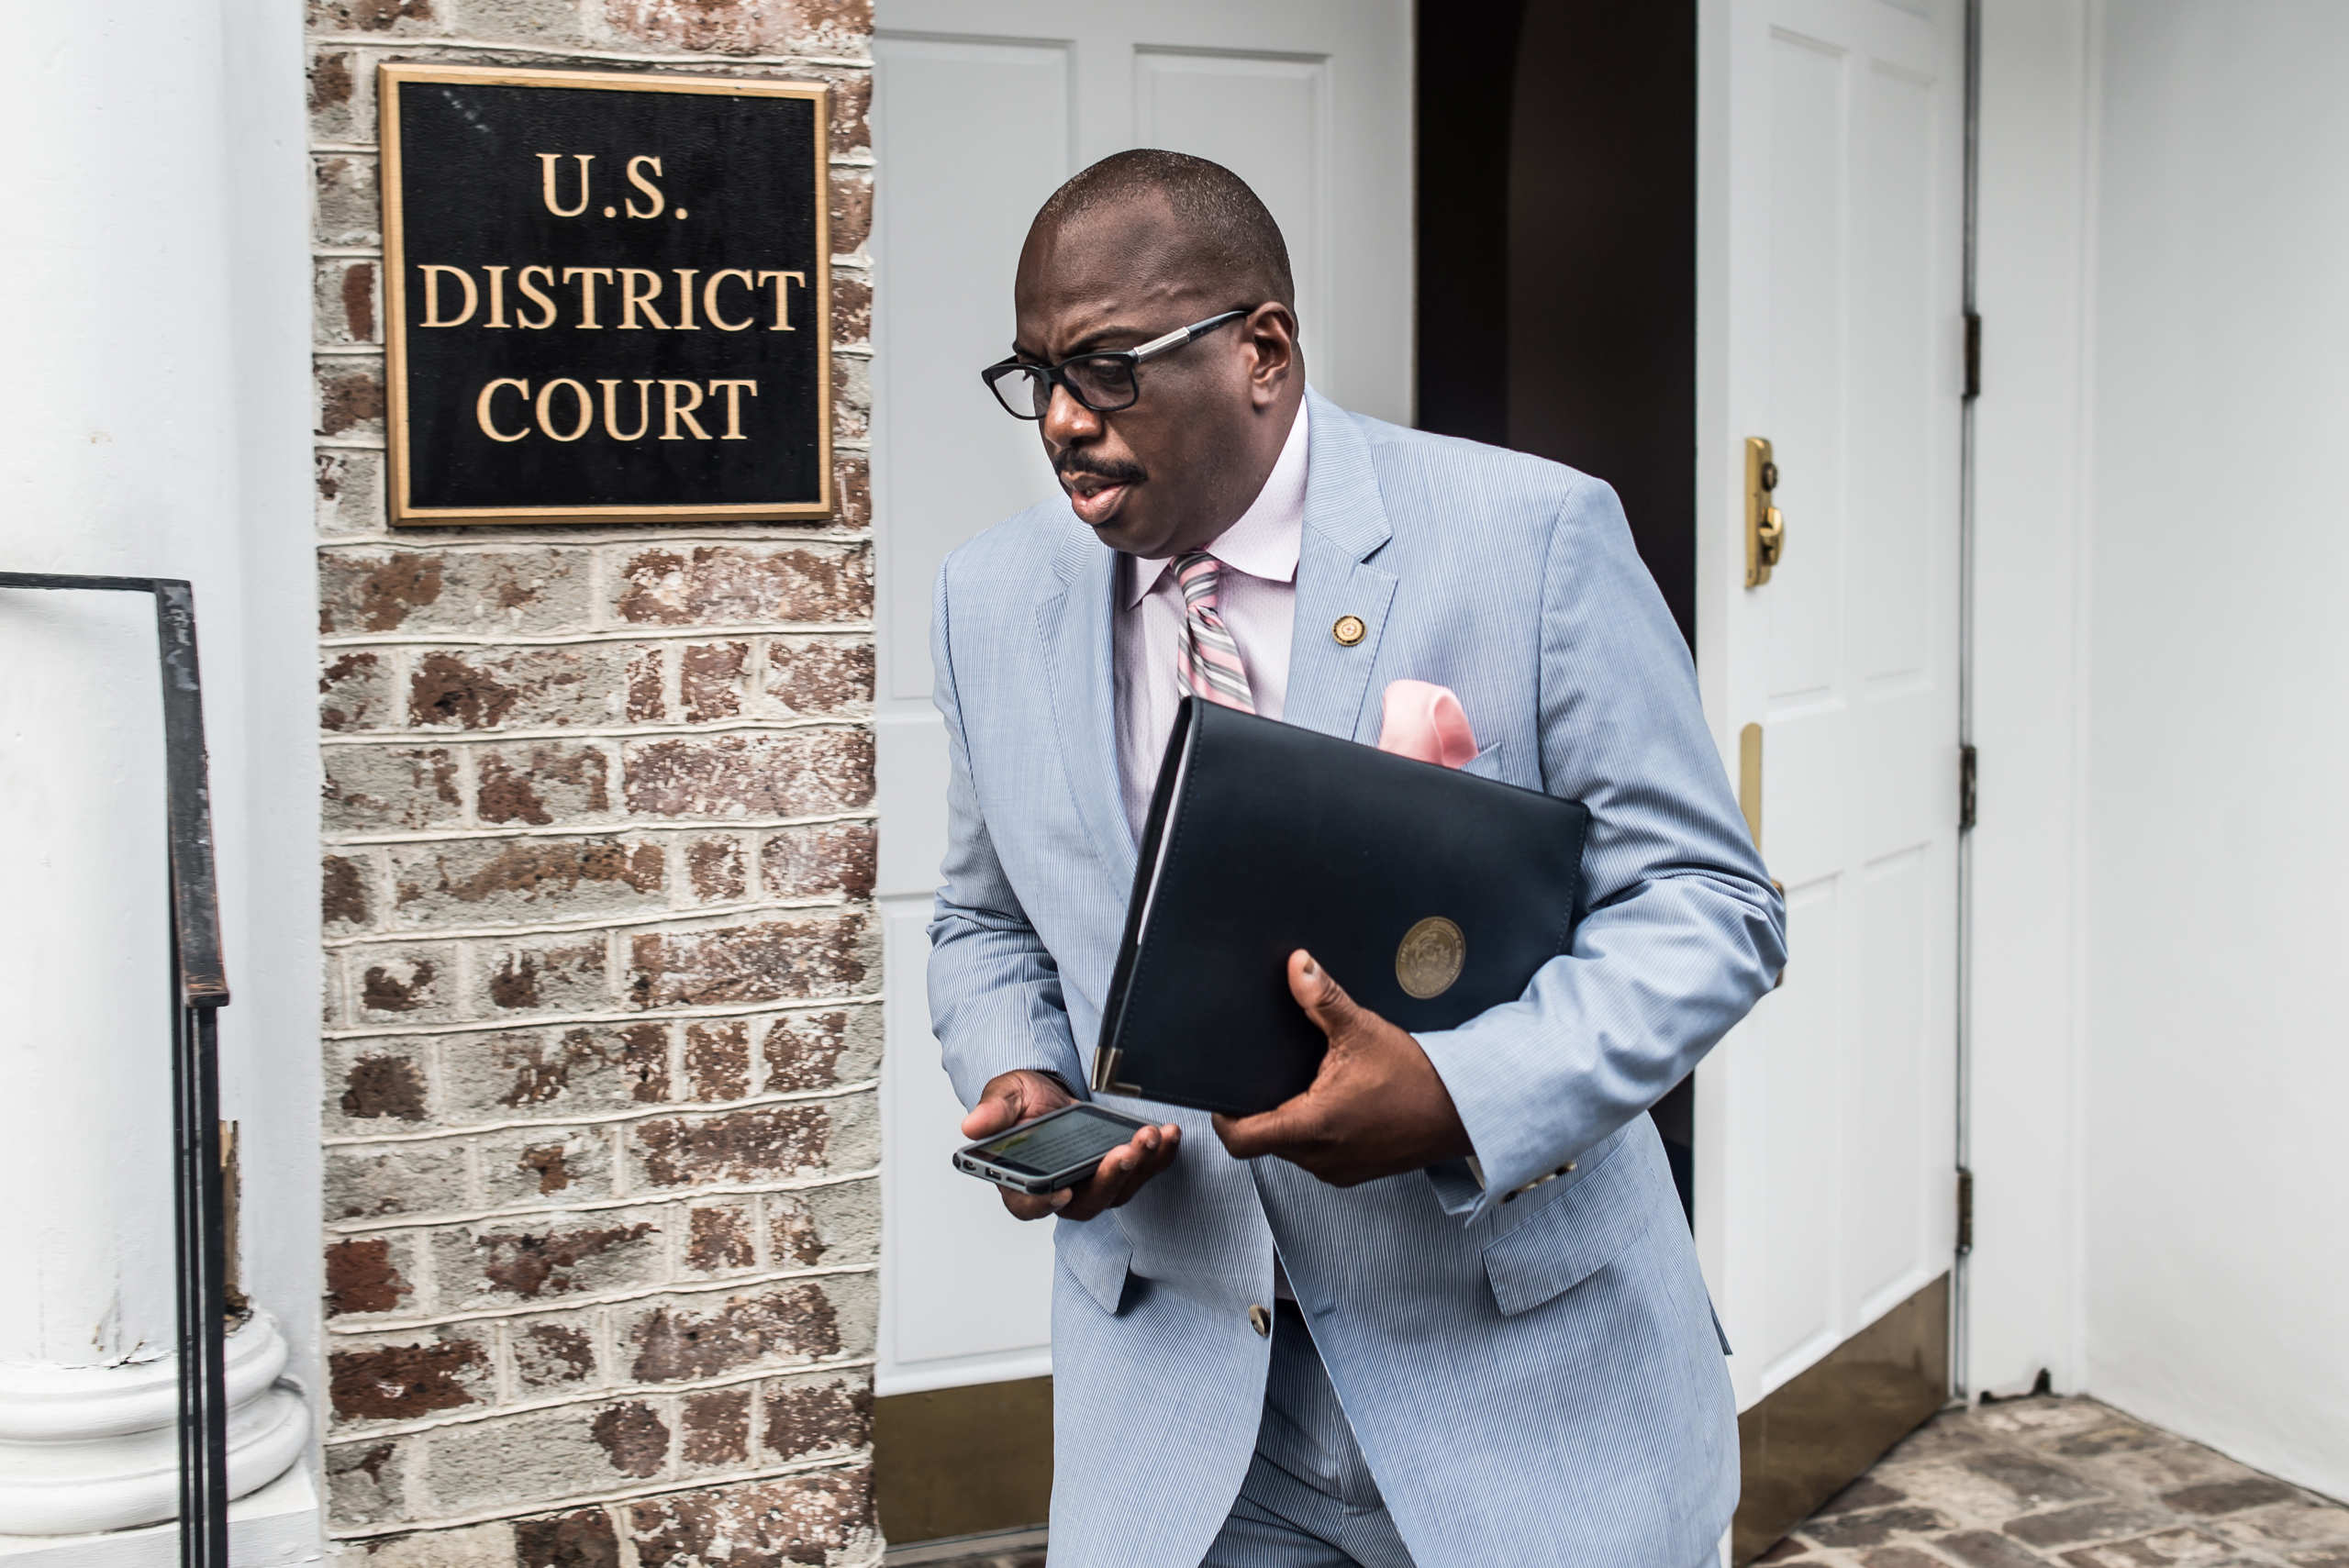 Malcolm Graham, a North Carolina State Senator and brother of Cynthia Hurd, exits a federal court building prior to arraignment hearings for Dylann Roof in Charleston, South Carolina on July 31, 2015. Roof, the shooter involved in the June 17 massacre at Emanuel AME Church in Charleston faces 33 federal charges of federal hate crimes.